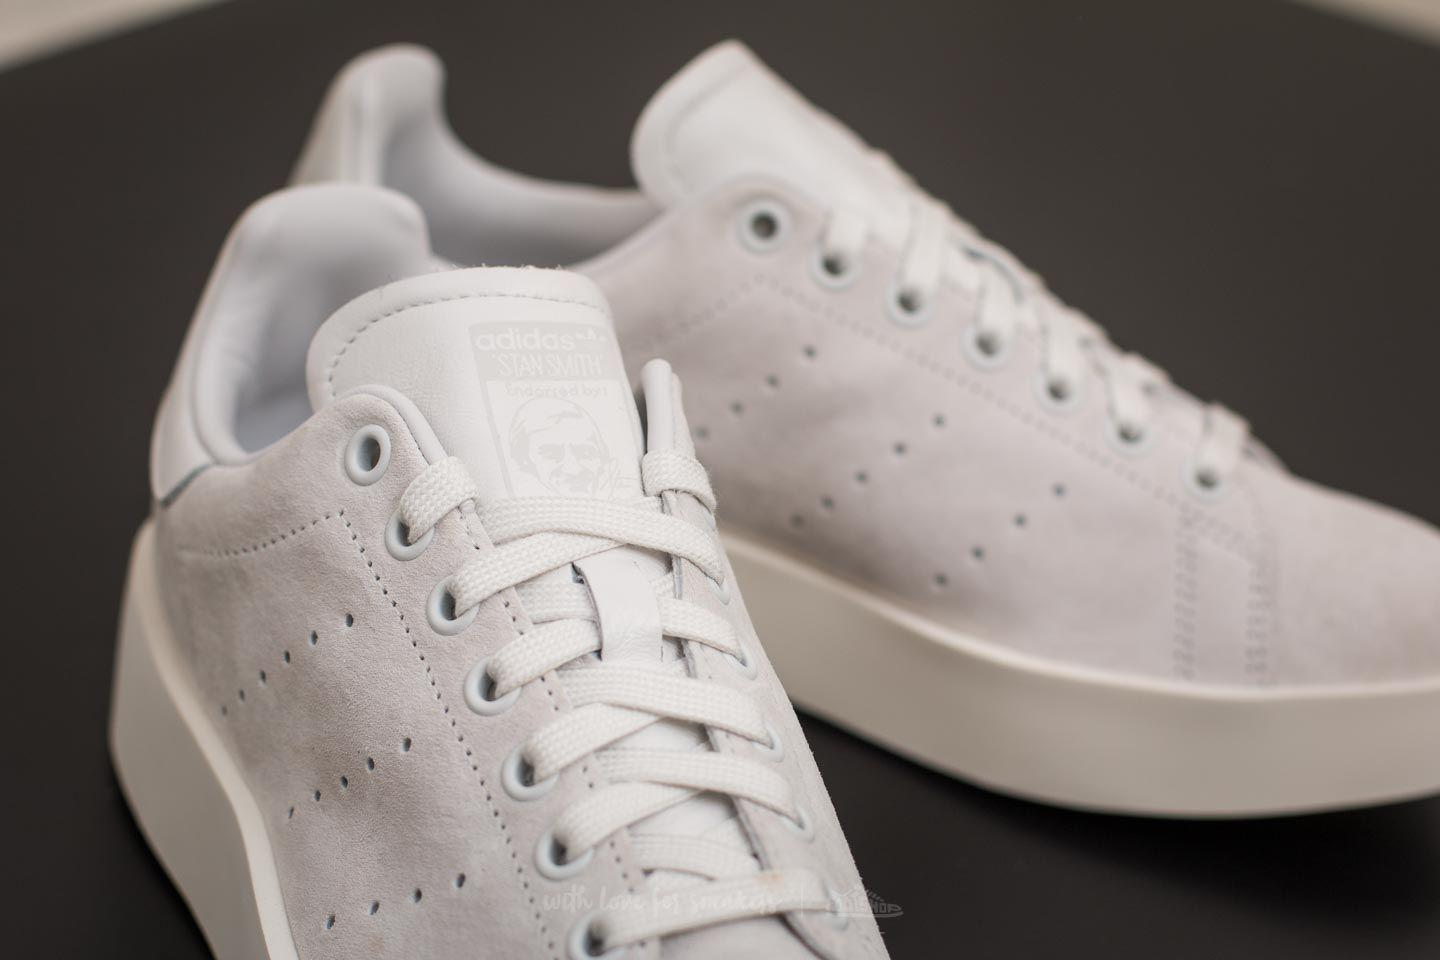 lyst adidas originali adidas stan smith audace w crystal white